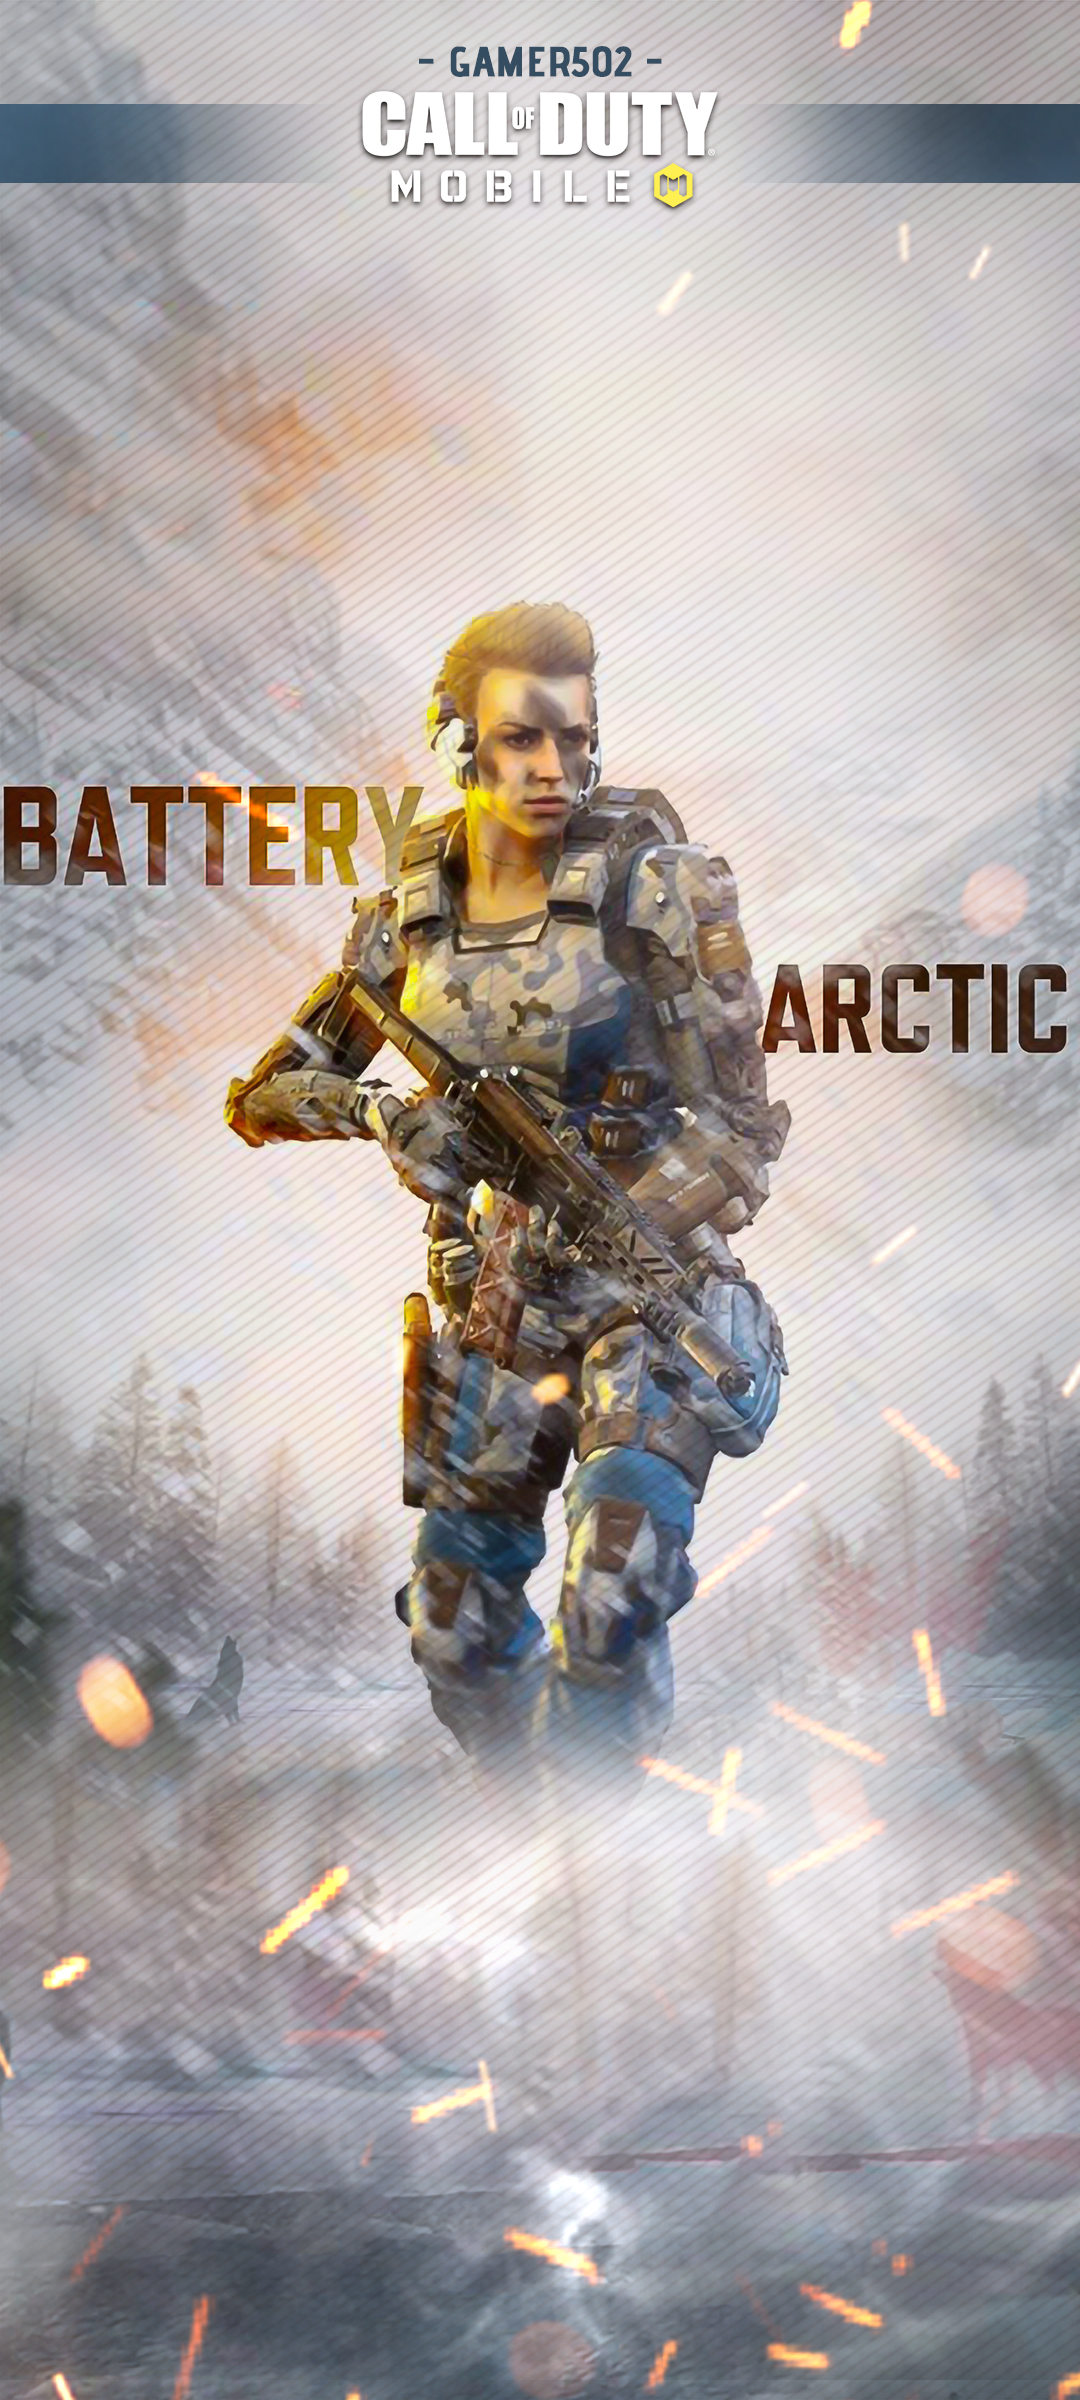 Call of Duty Mobile Wallpaper Battery Arctic